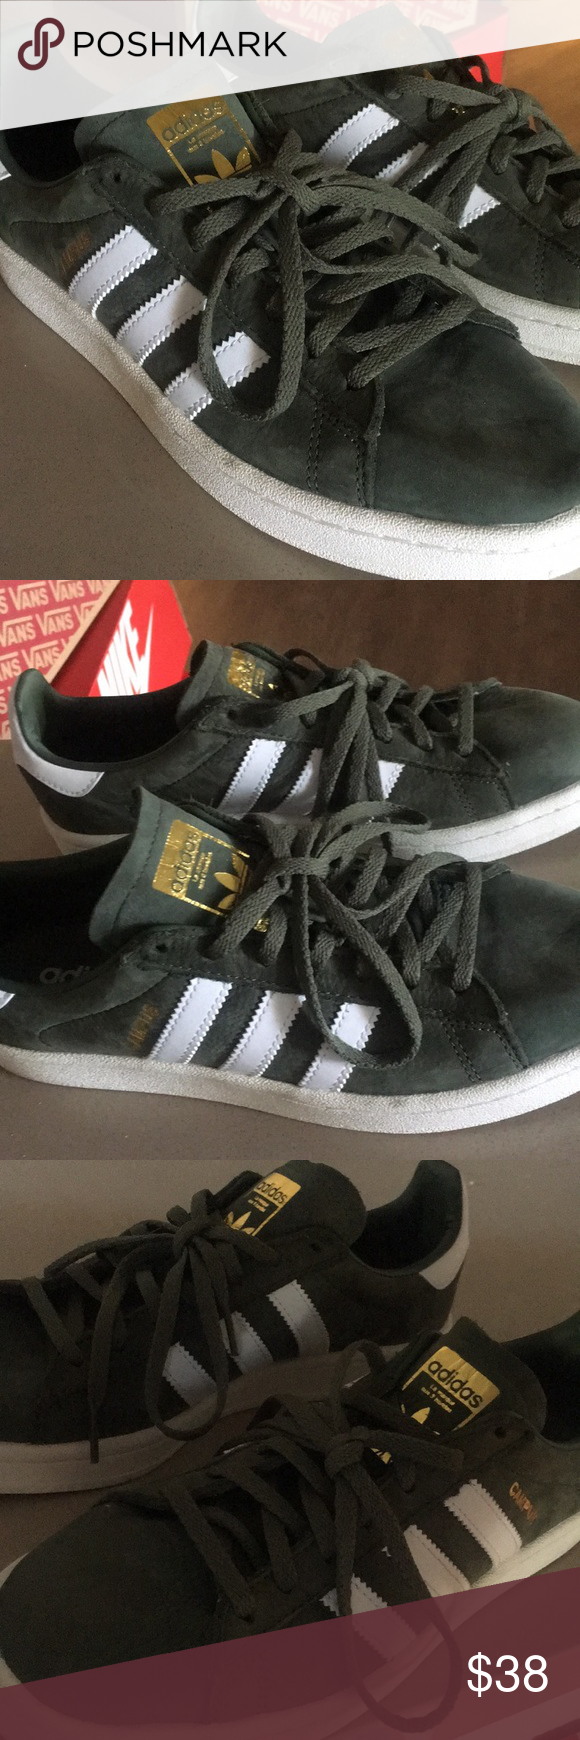 Size 8 Adidas campus sneakers | Gold